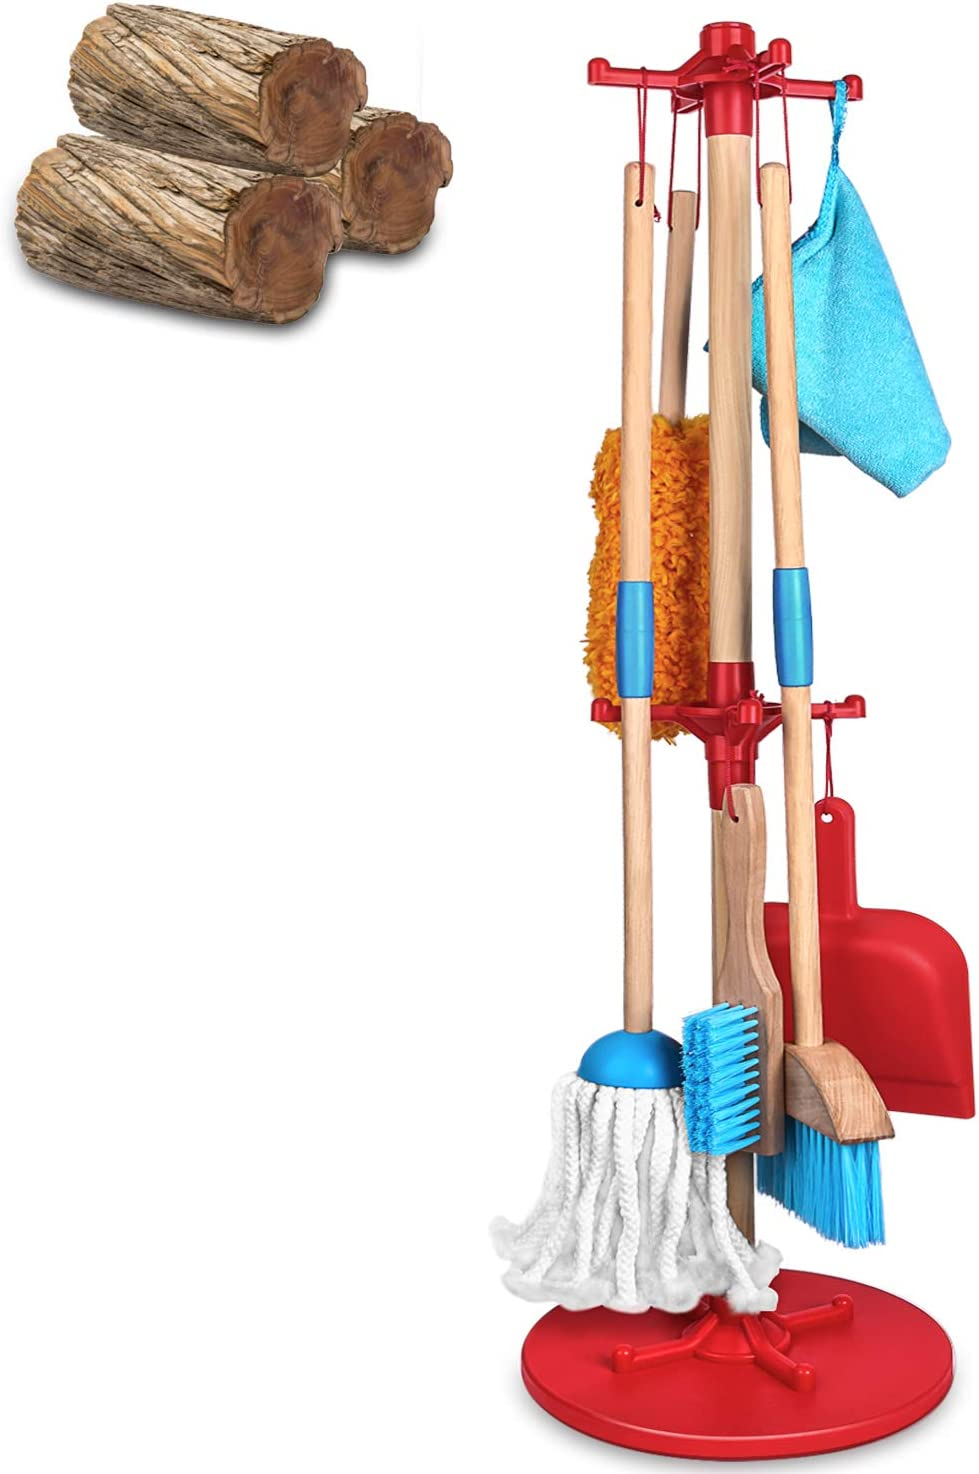 AOKESI Kids Cleaning Set 7 Piece - Wooden Detachable Toy Cleaning Set Includes Kid-Sized with Housekeeping Broom, Mop, Duster, Clothes and Organizing Stand for Skill- and Confidence-Building